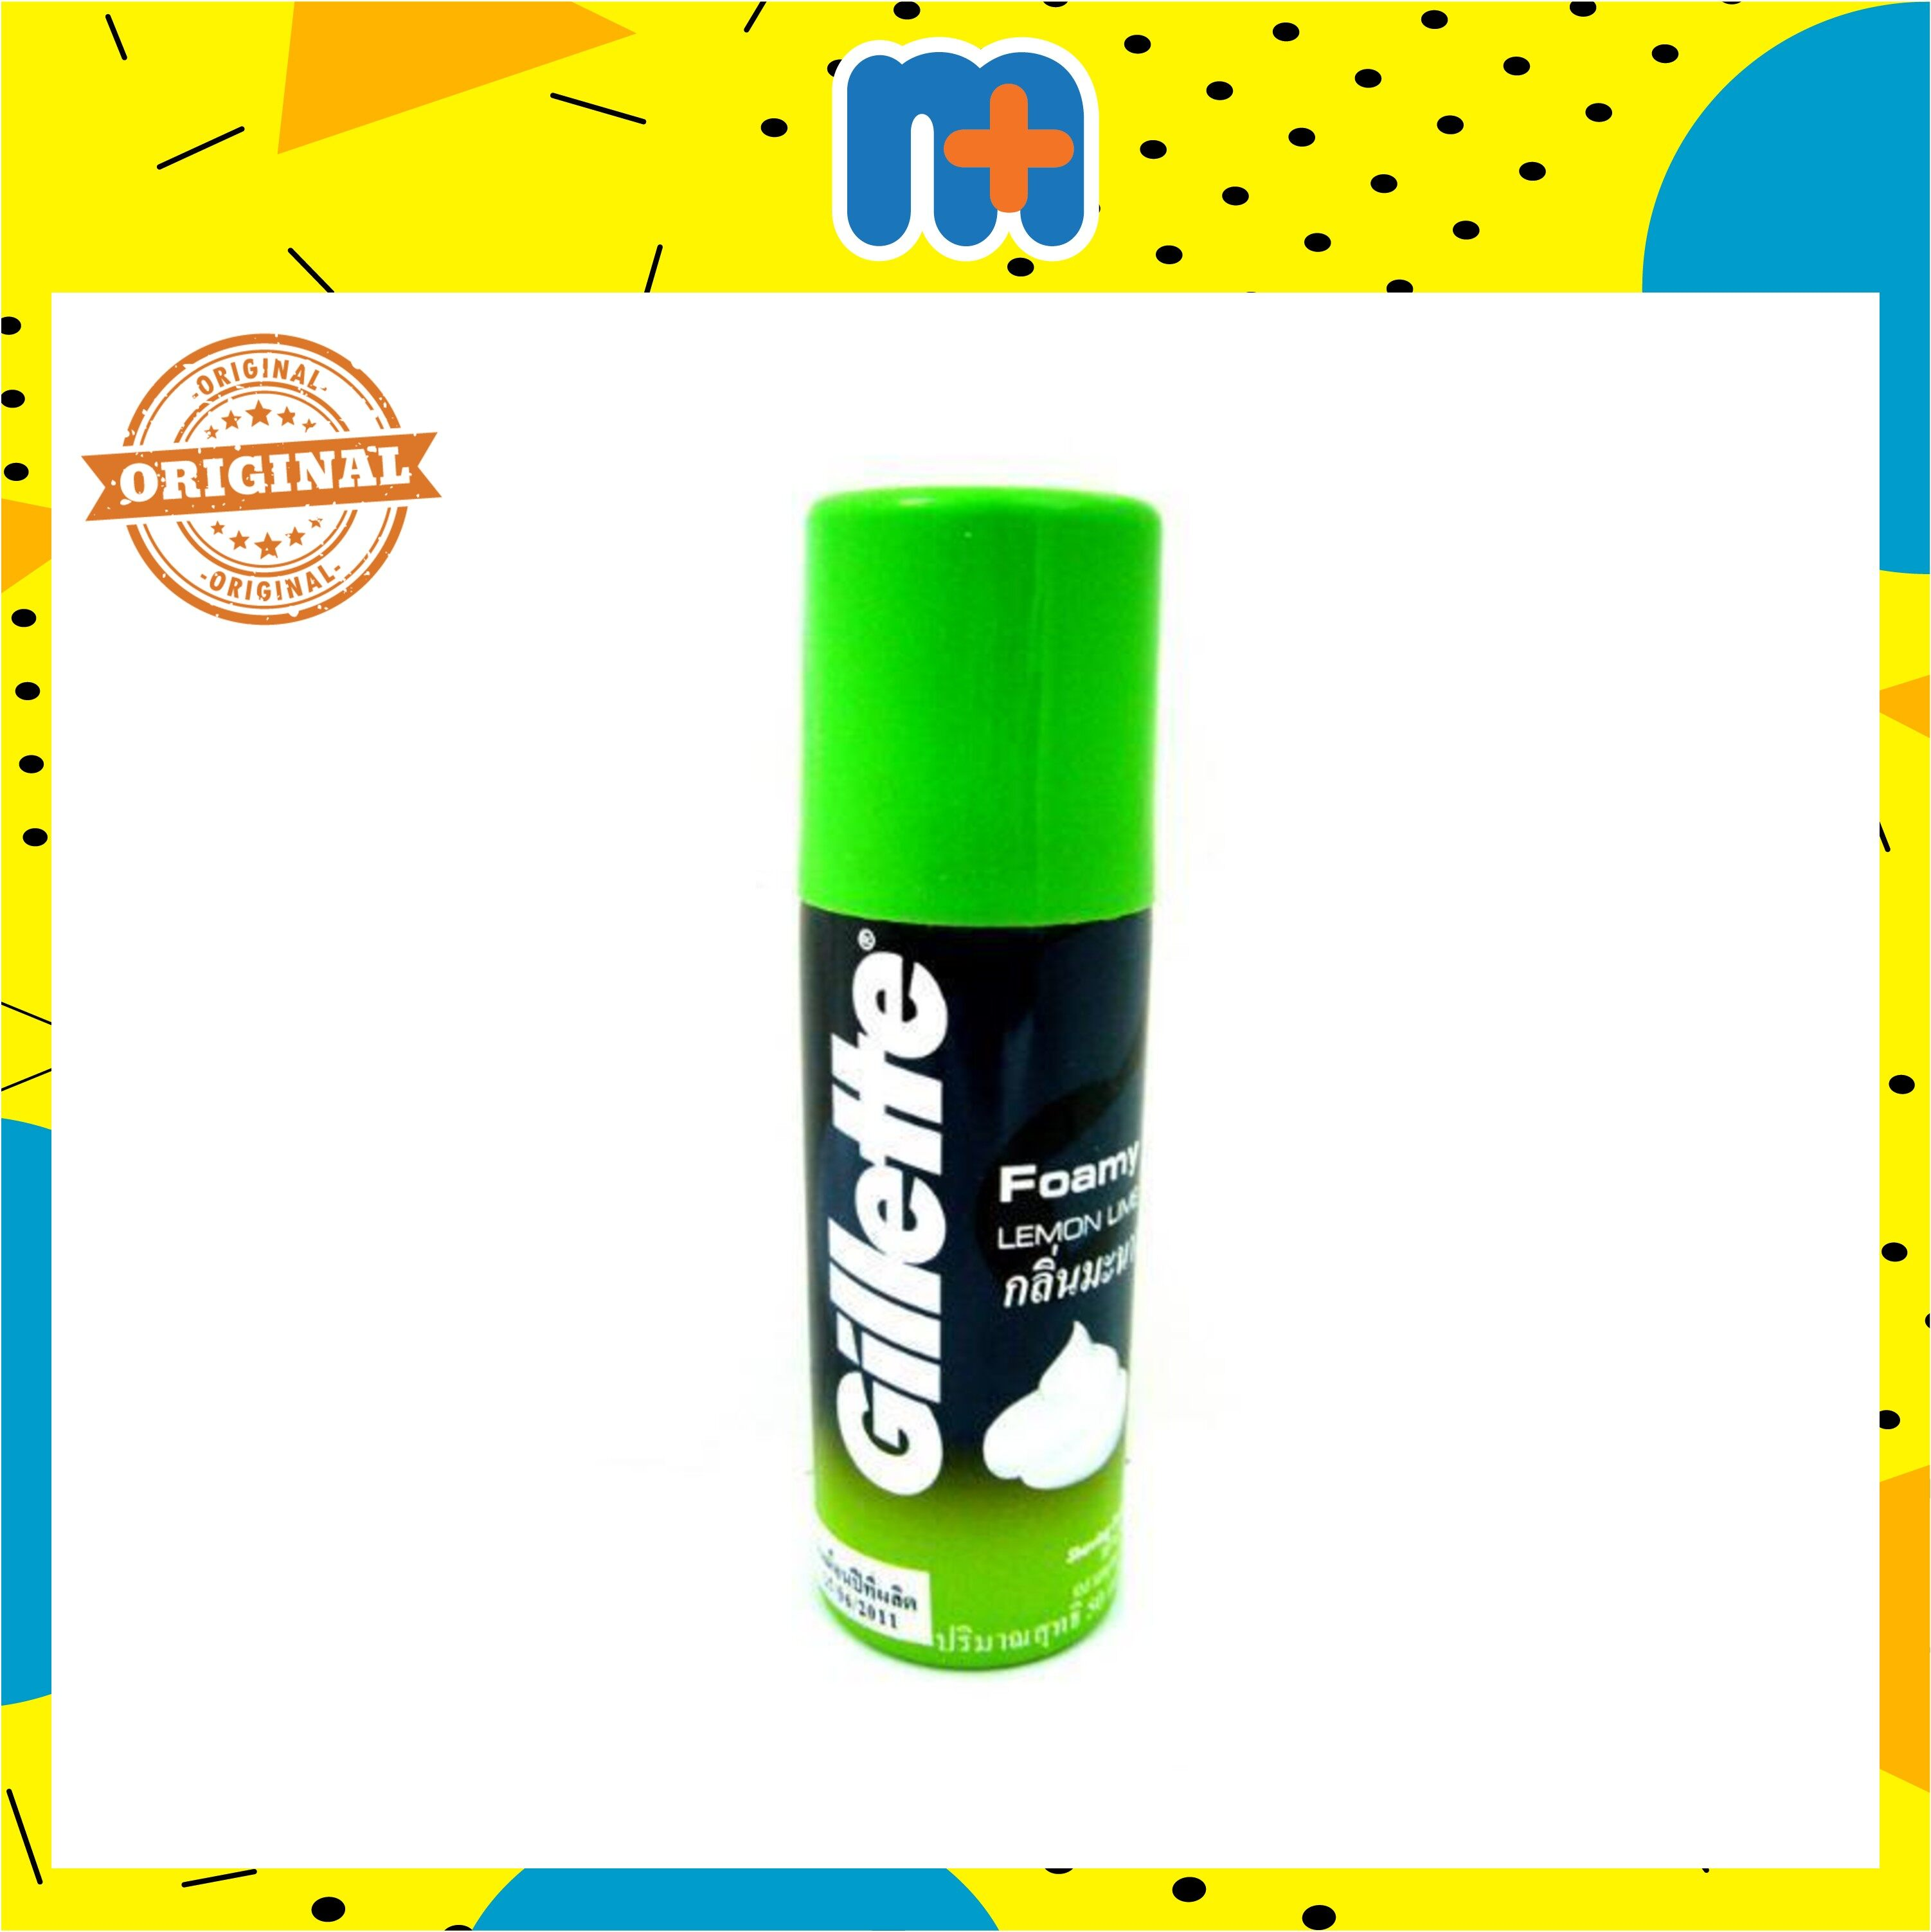 [MPLUS] GILLETTE FOAM LEMON LIME 50G